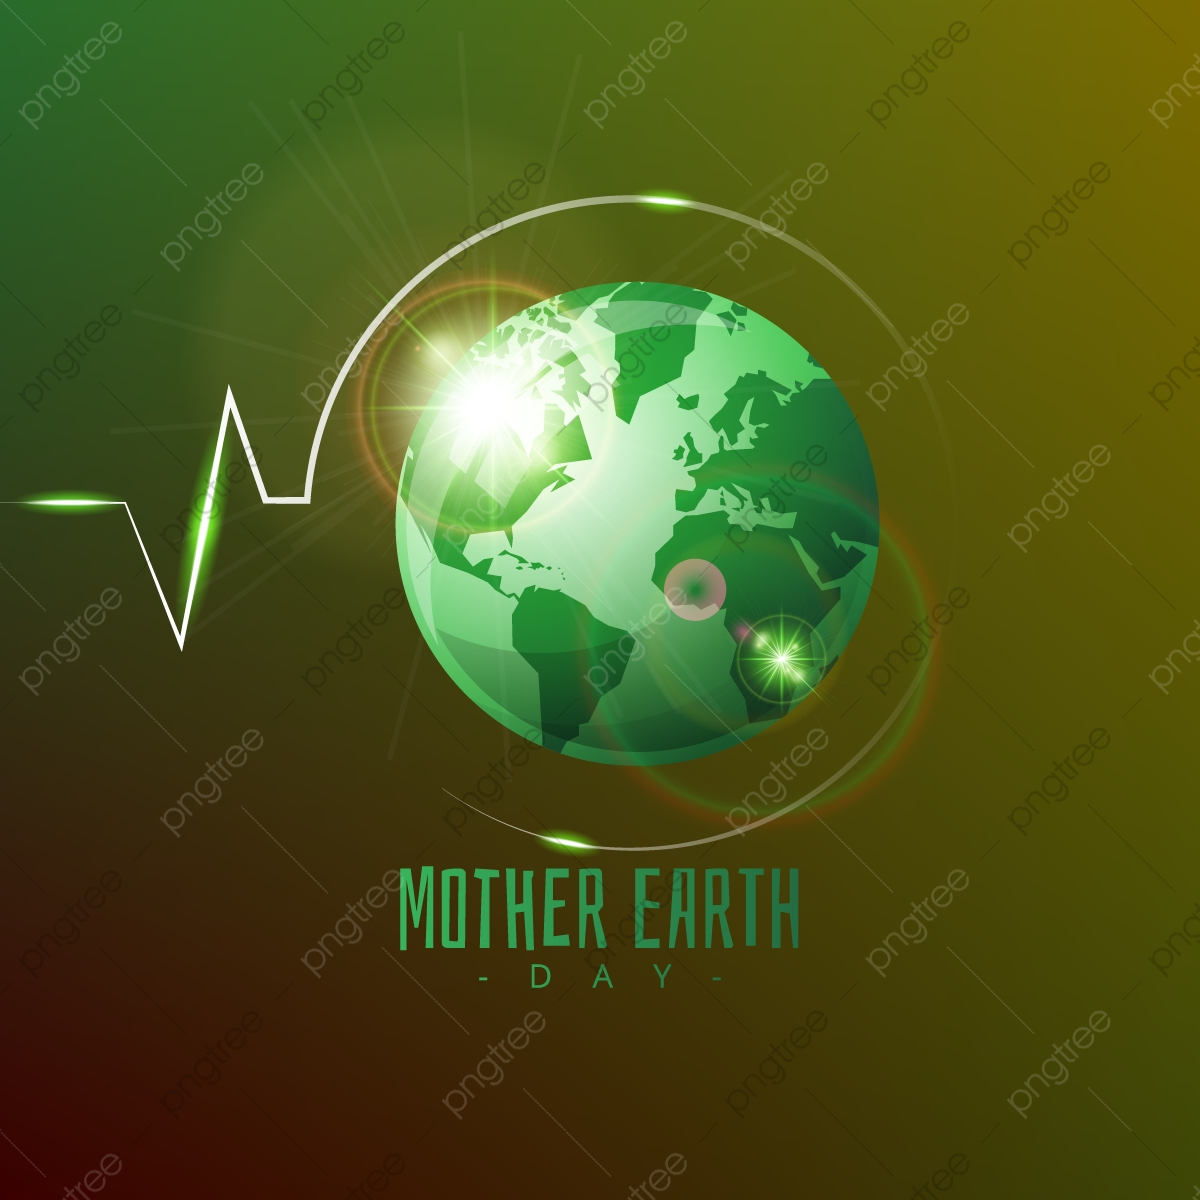 Gradient Mother Earth Day Background Earth Day Clipart Earth Mother Png And Vector With Transparent Background For Free Download